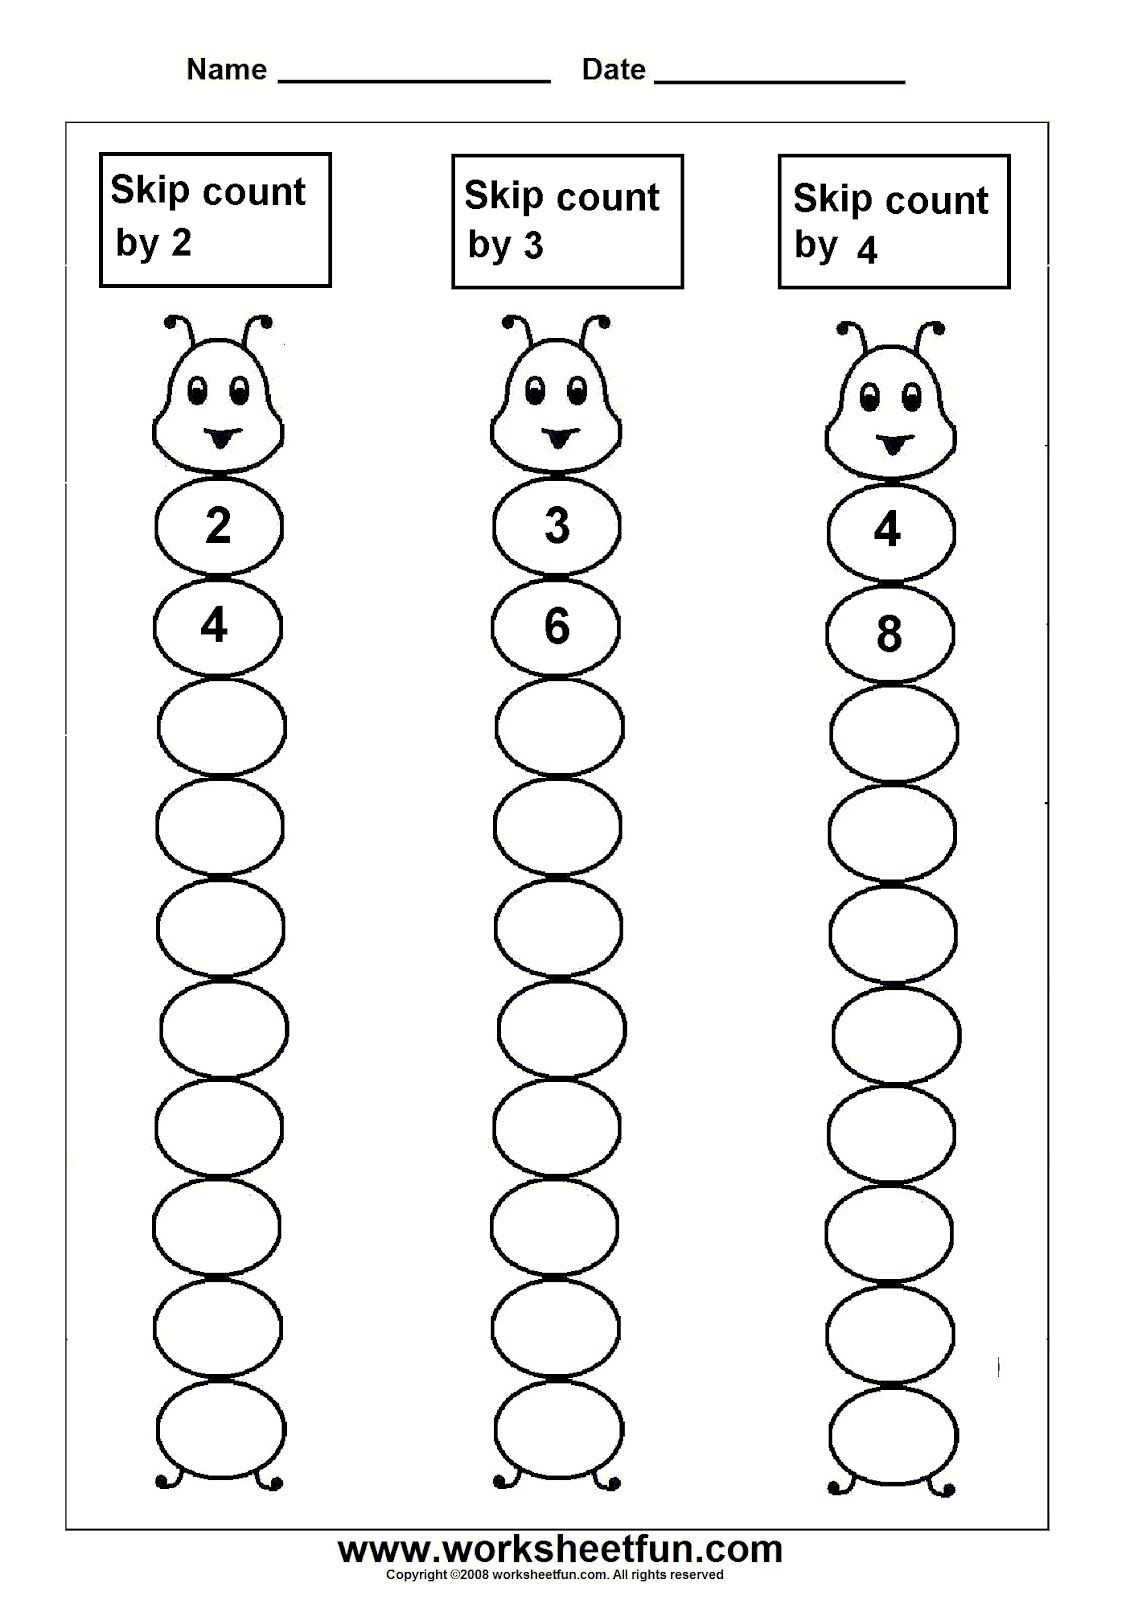 Skip Counting Worksheets First Grade Skip Counting